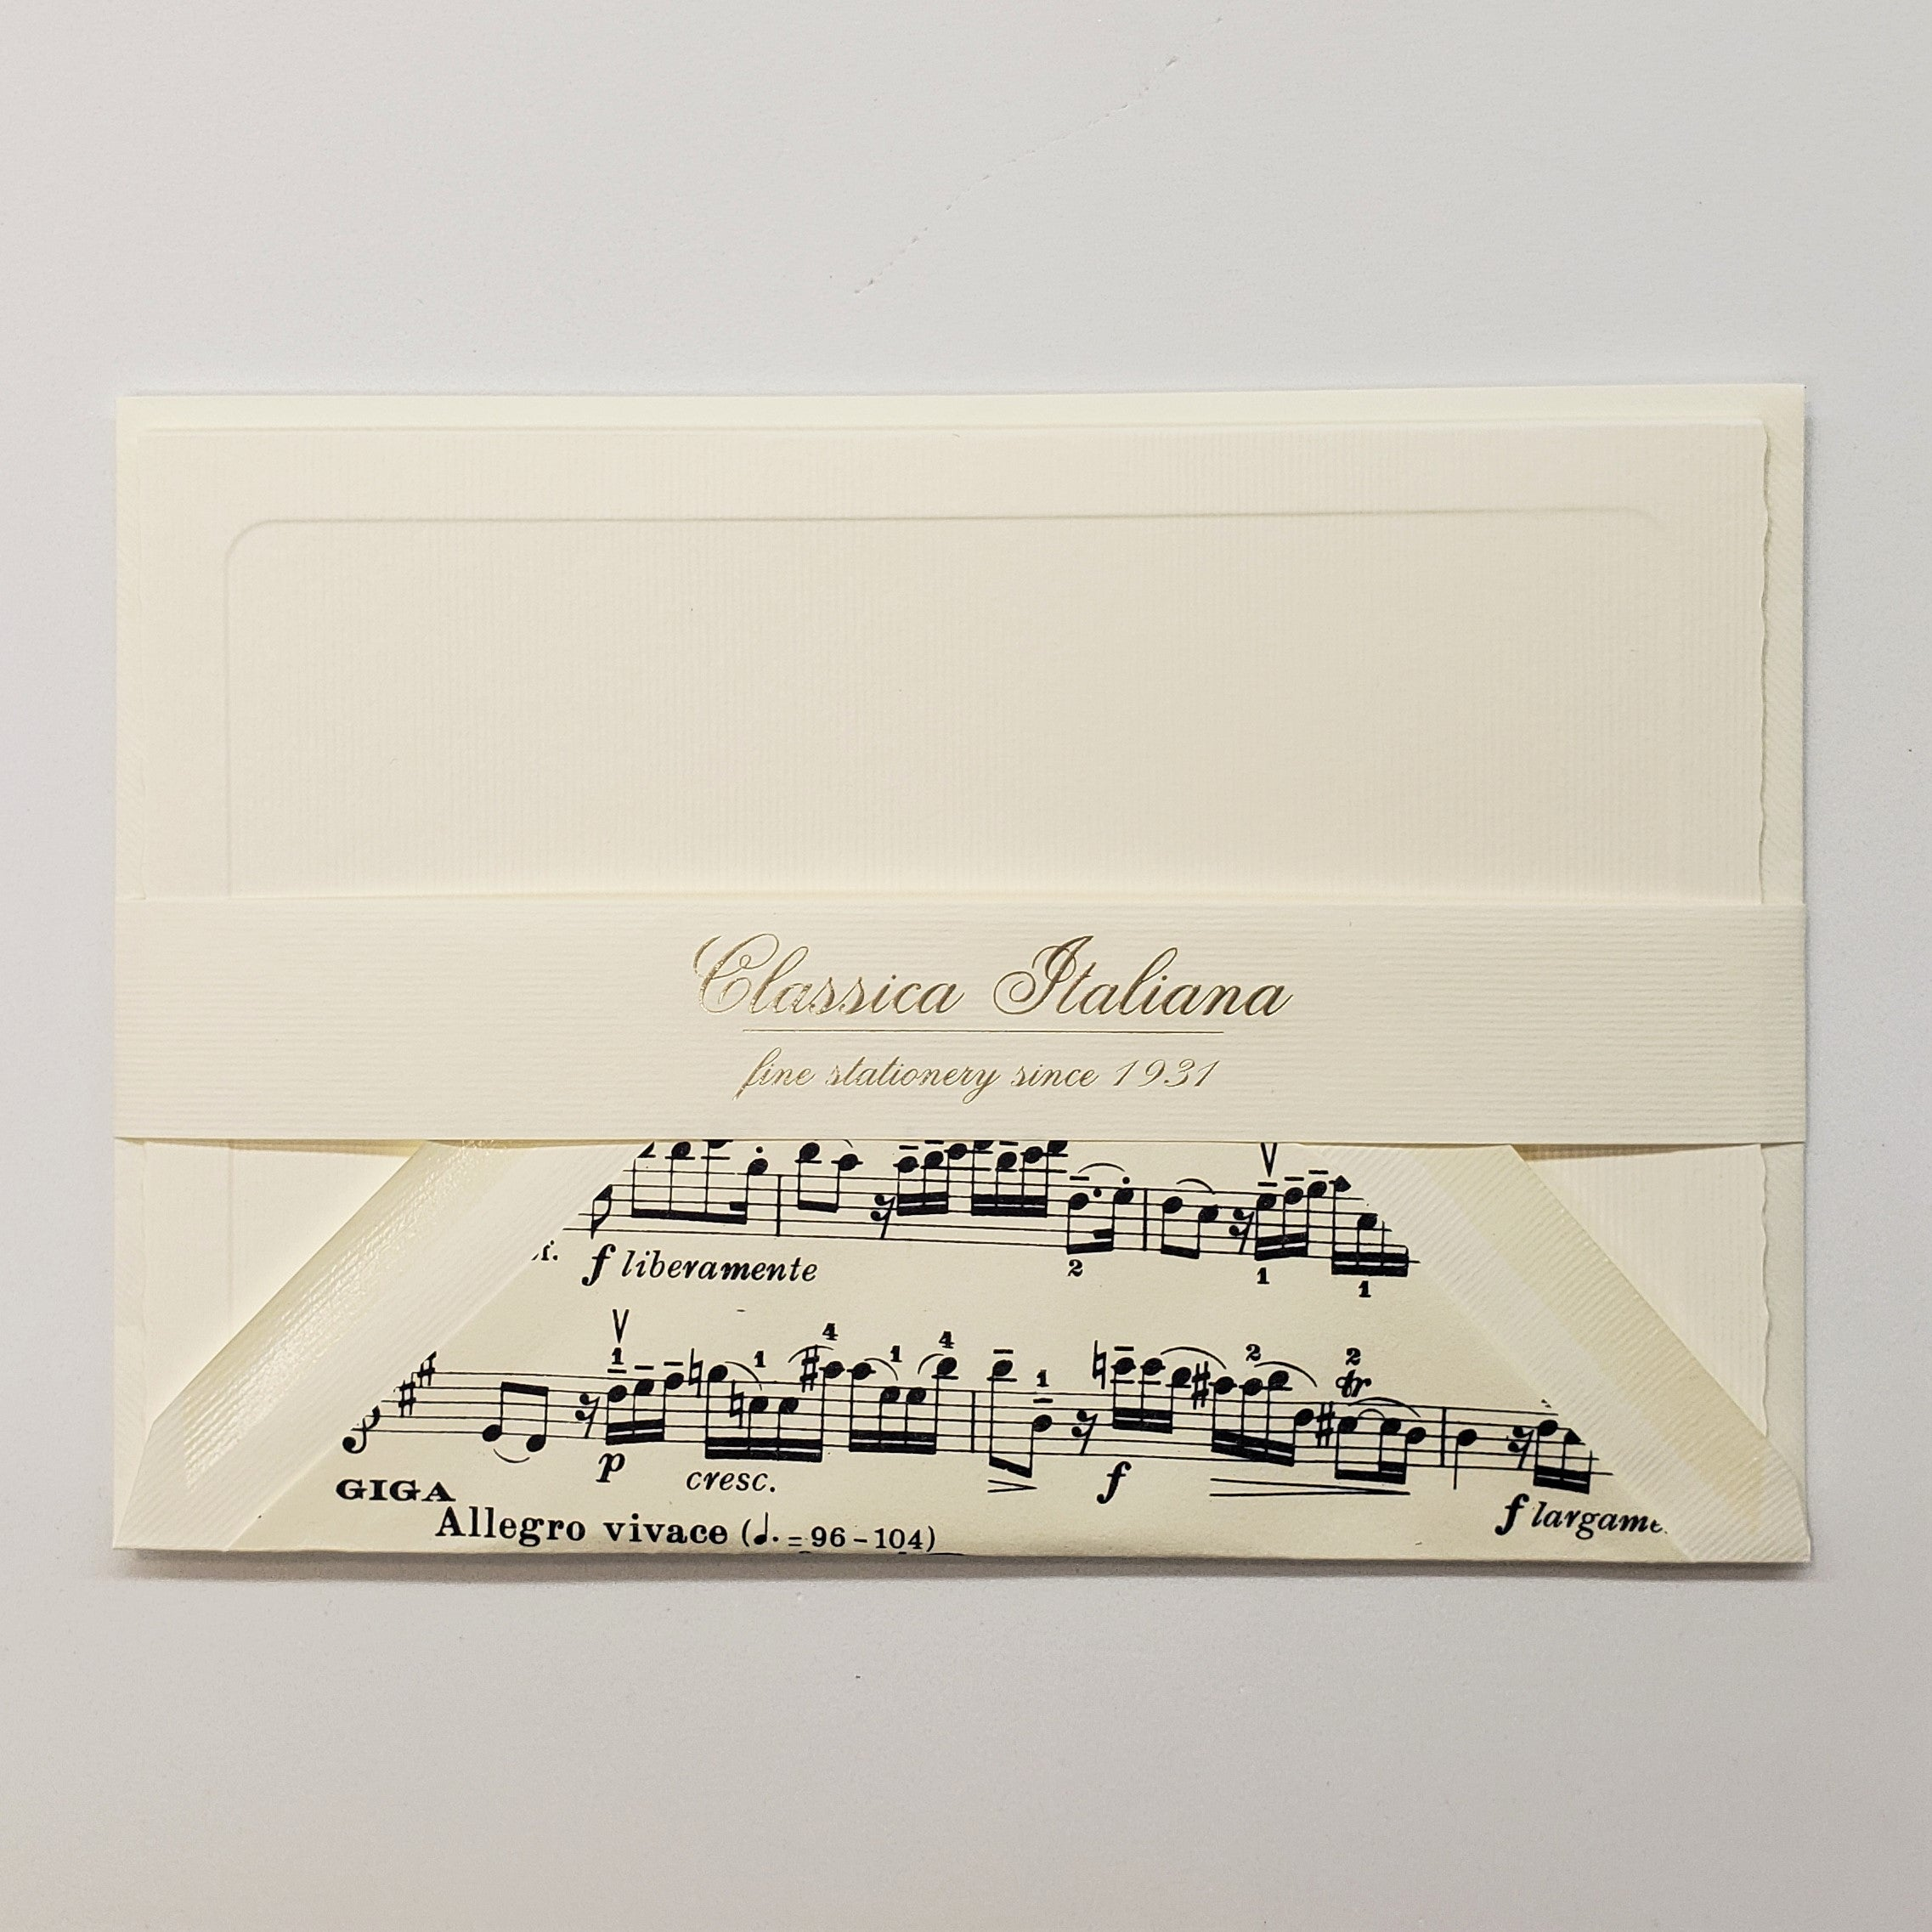 Boxed Lg Double Note Cards w/Lined Envelopes - Classica Italiano - Musical Score